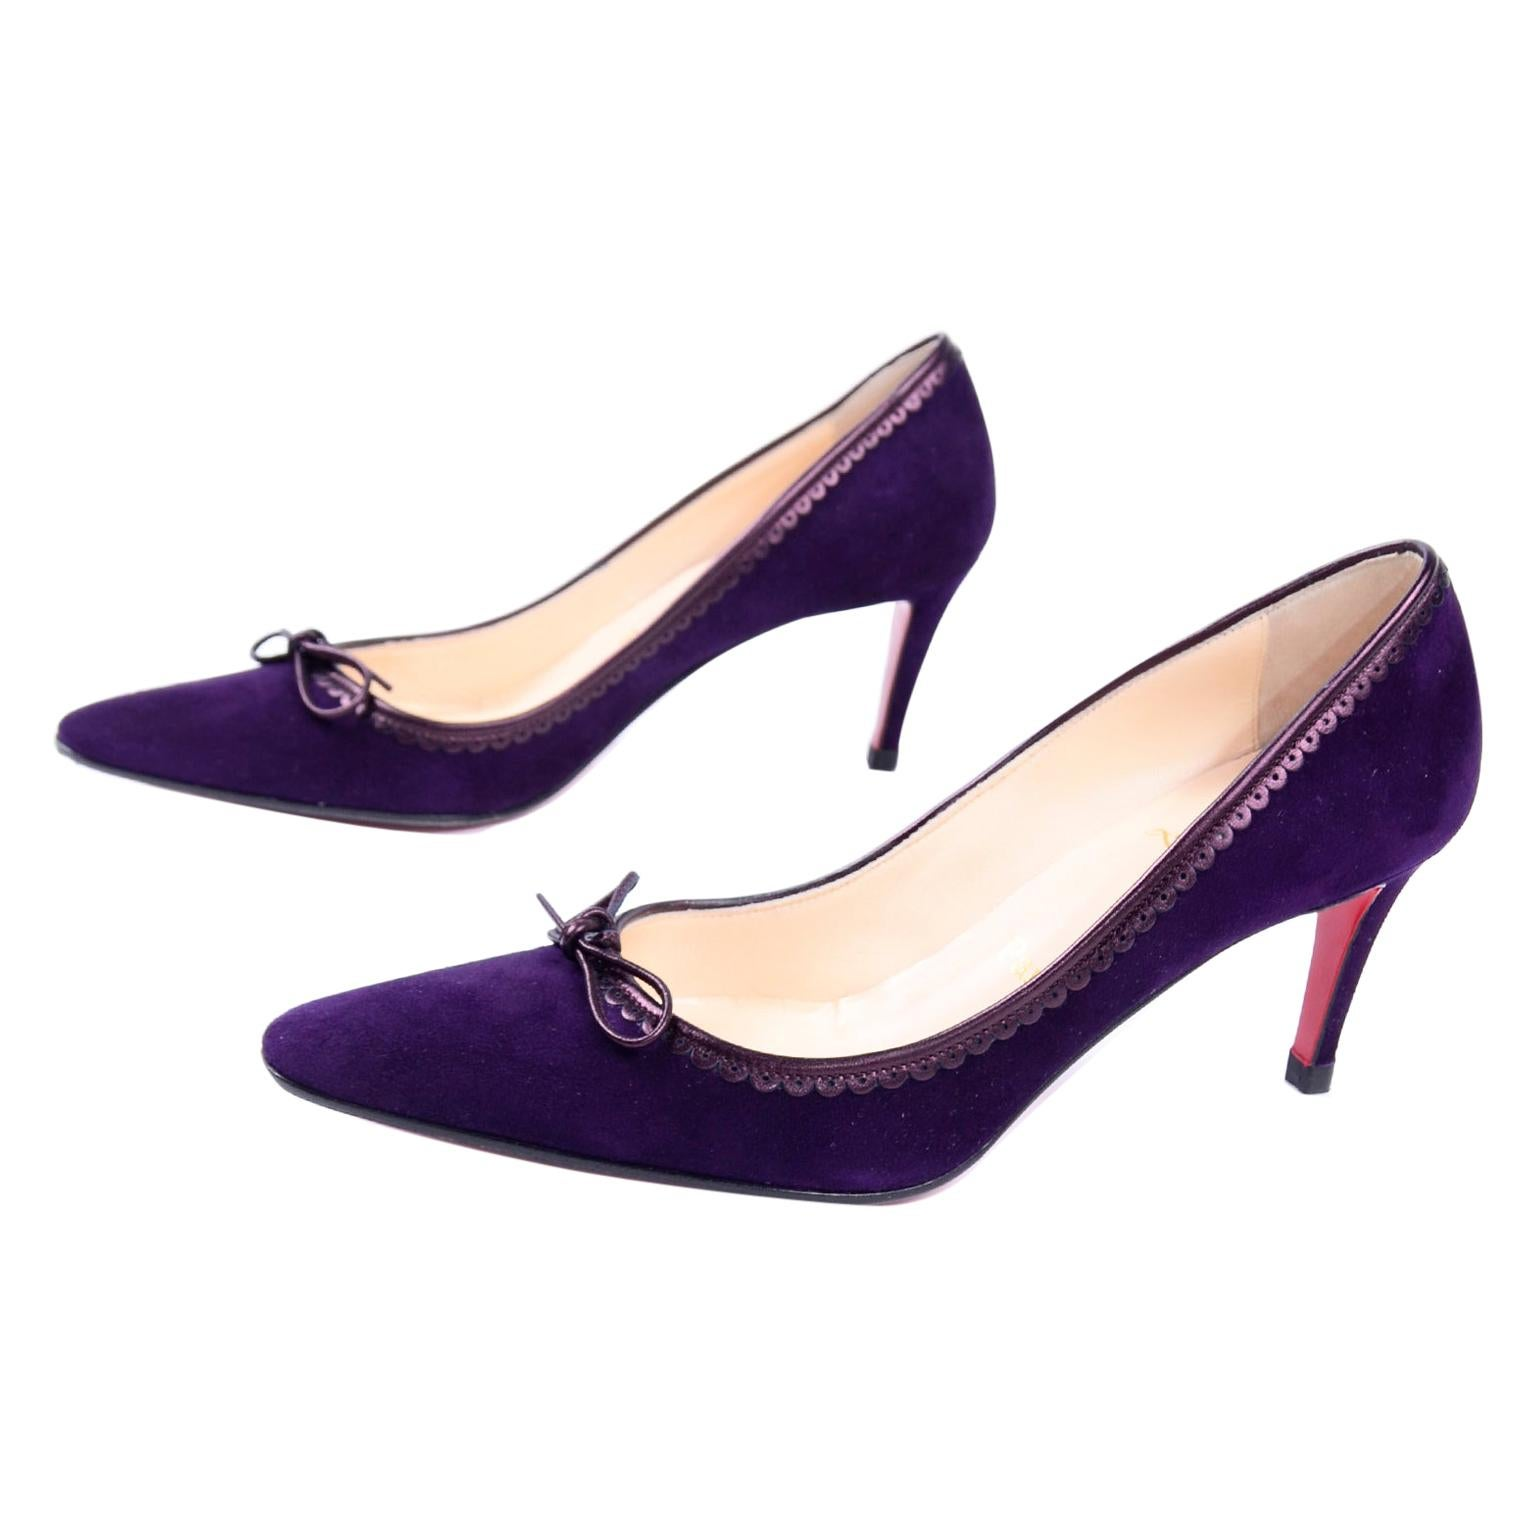 "Christian Louboutin Alice Shoes Purple Suede Bow Pumps With 3"" Heels Size 37"